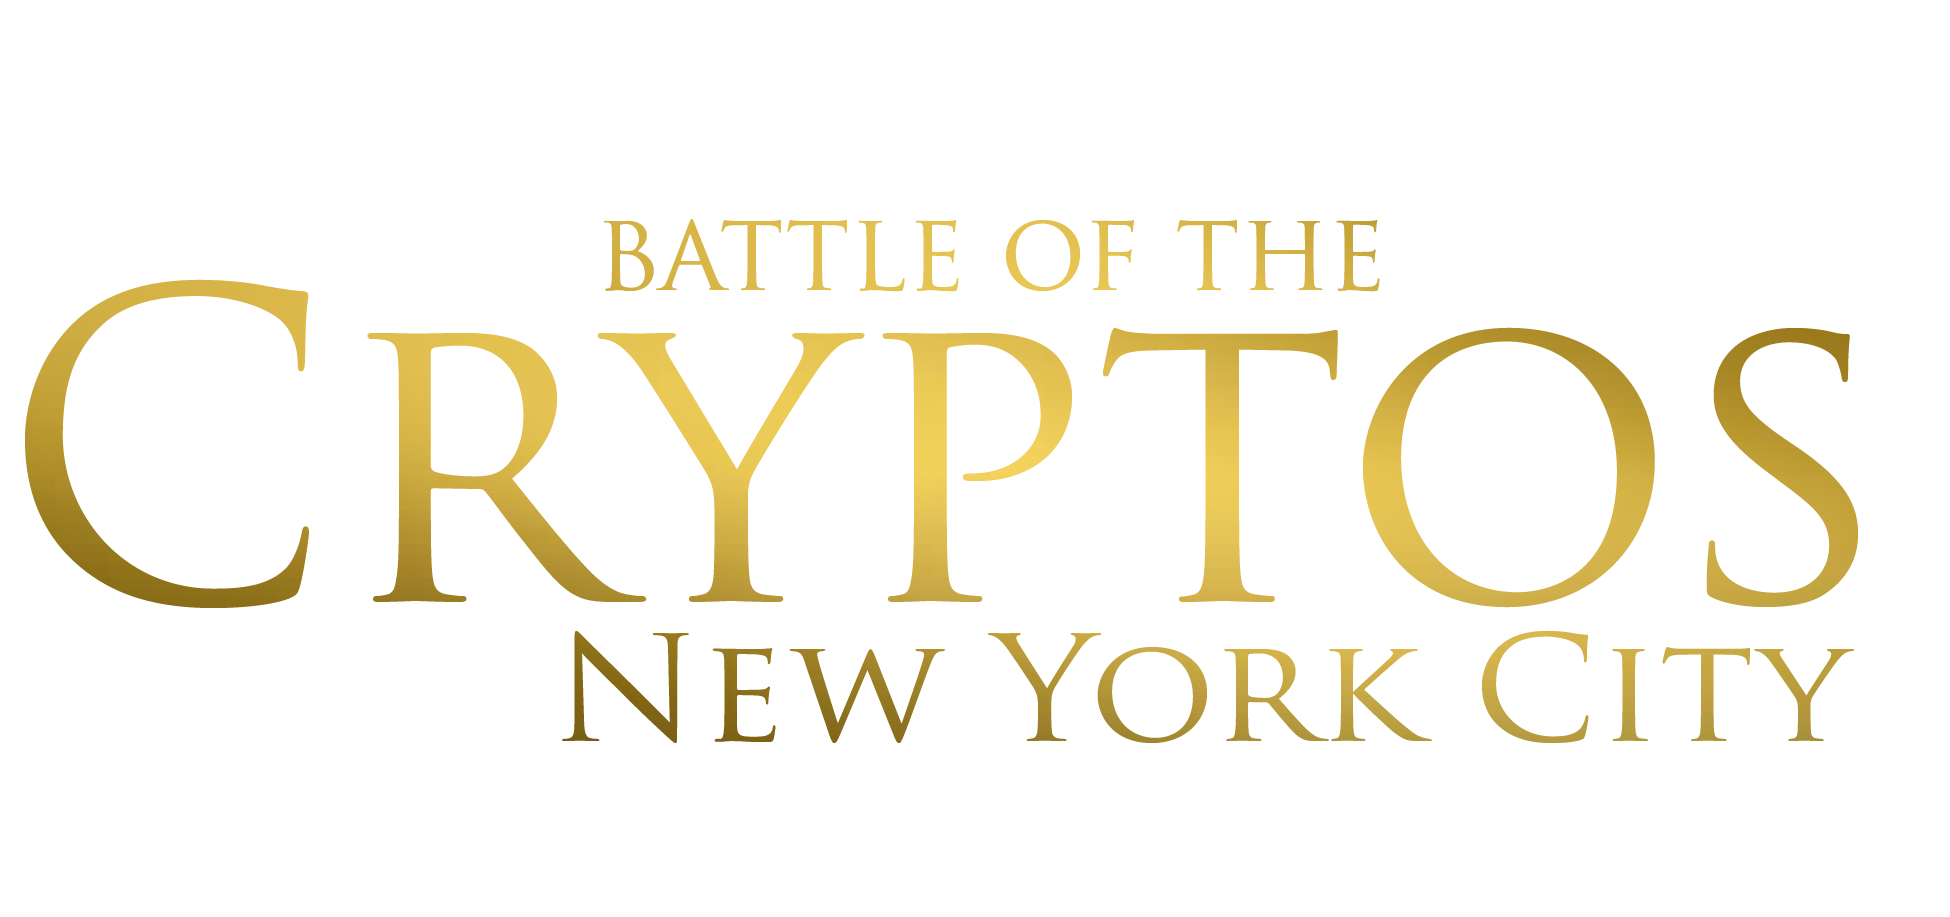 https://www.battlecryptos.com